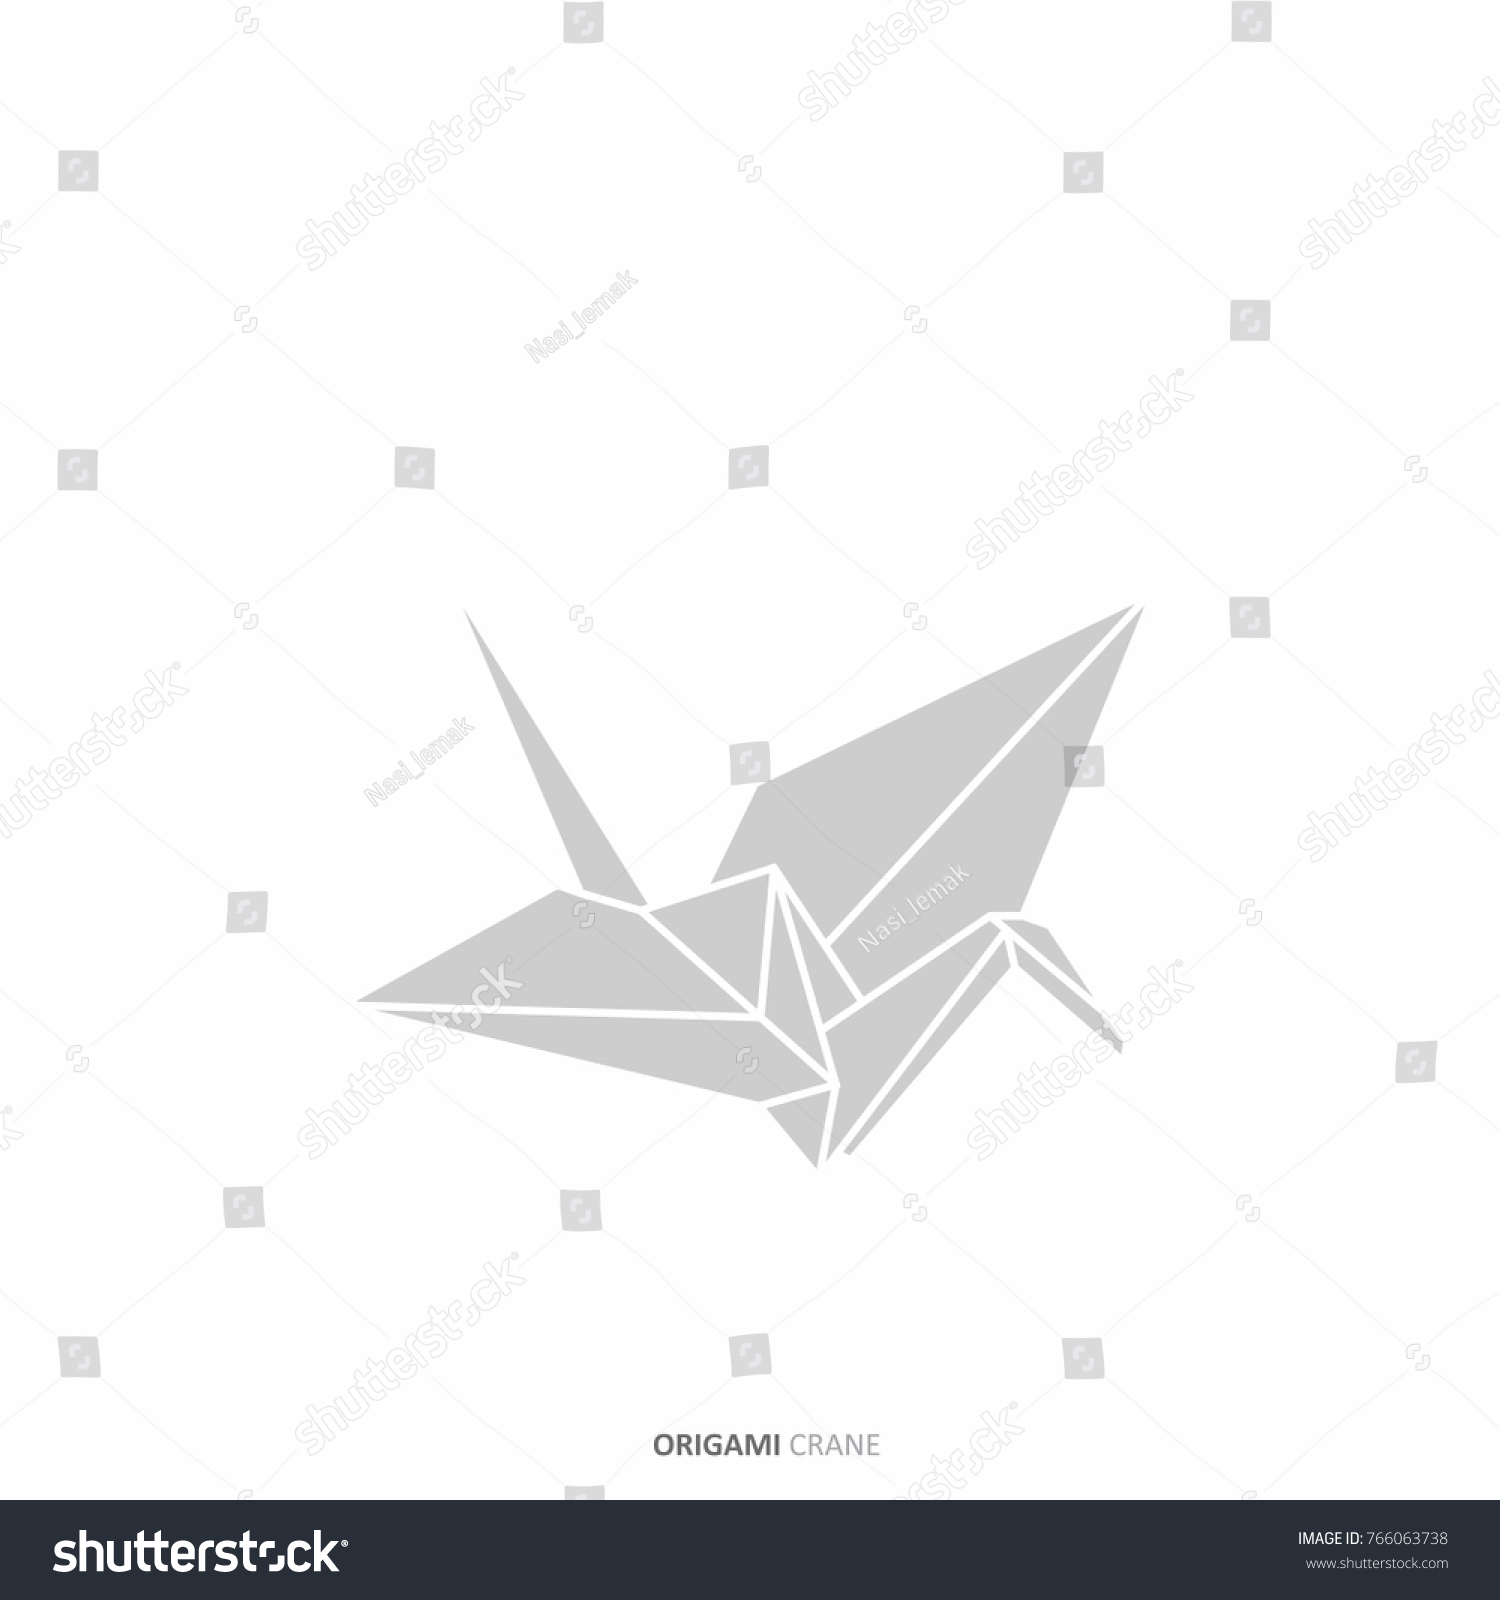 Origami Crane Outline Traditional Japanese Graphic Stock Vector Goose Diagrams In Design Concept